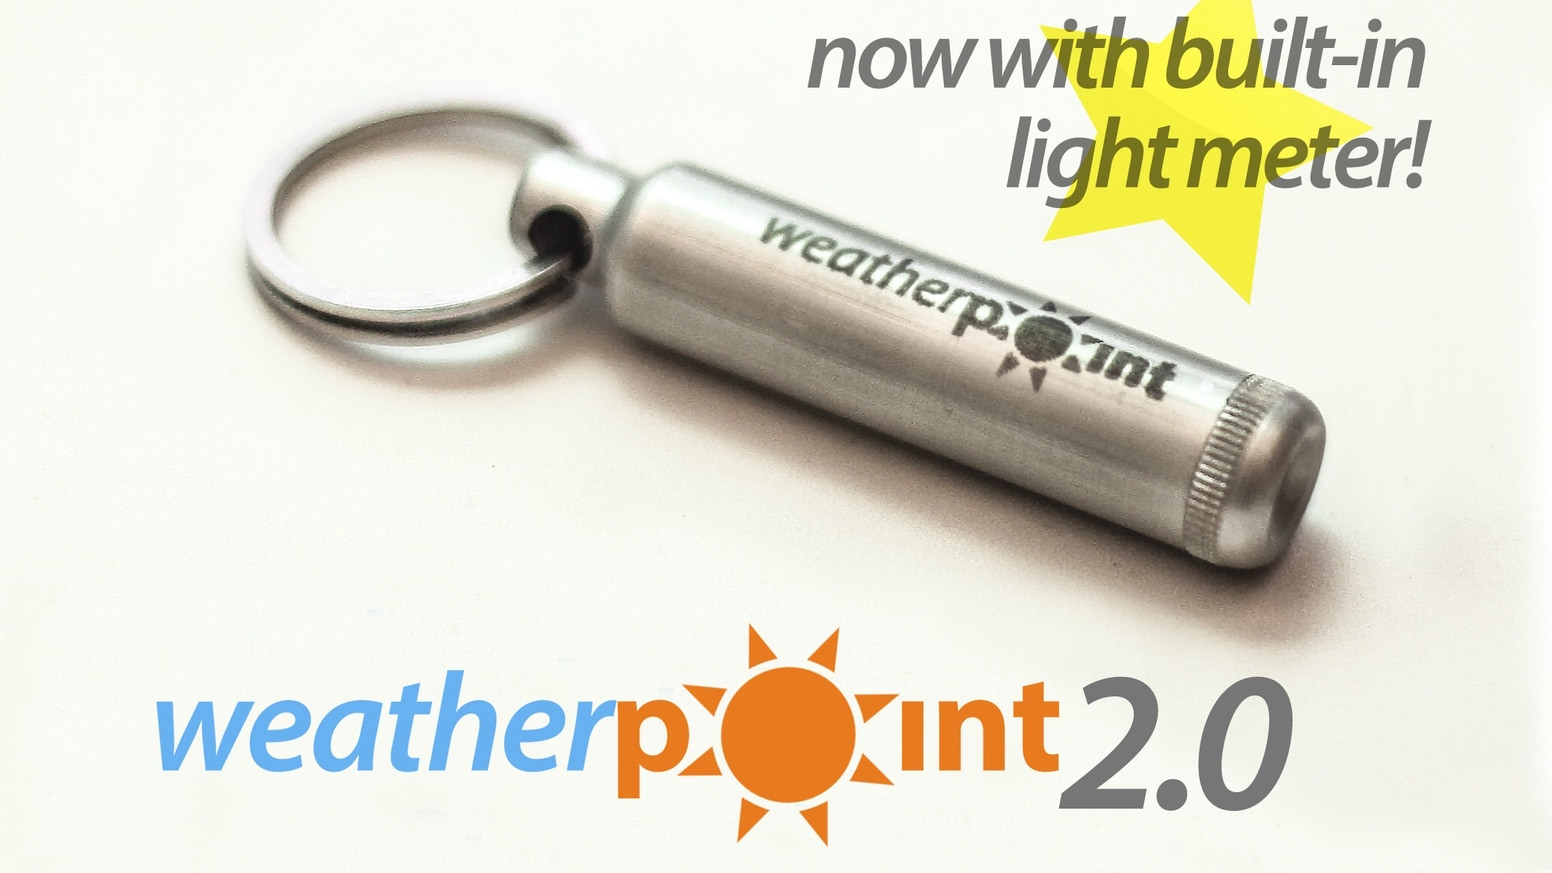 Weather Point is an individual keychain weather station. Measures temperature, humidity, UV, atmospheric pressure on your mobile device